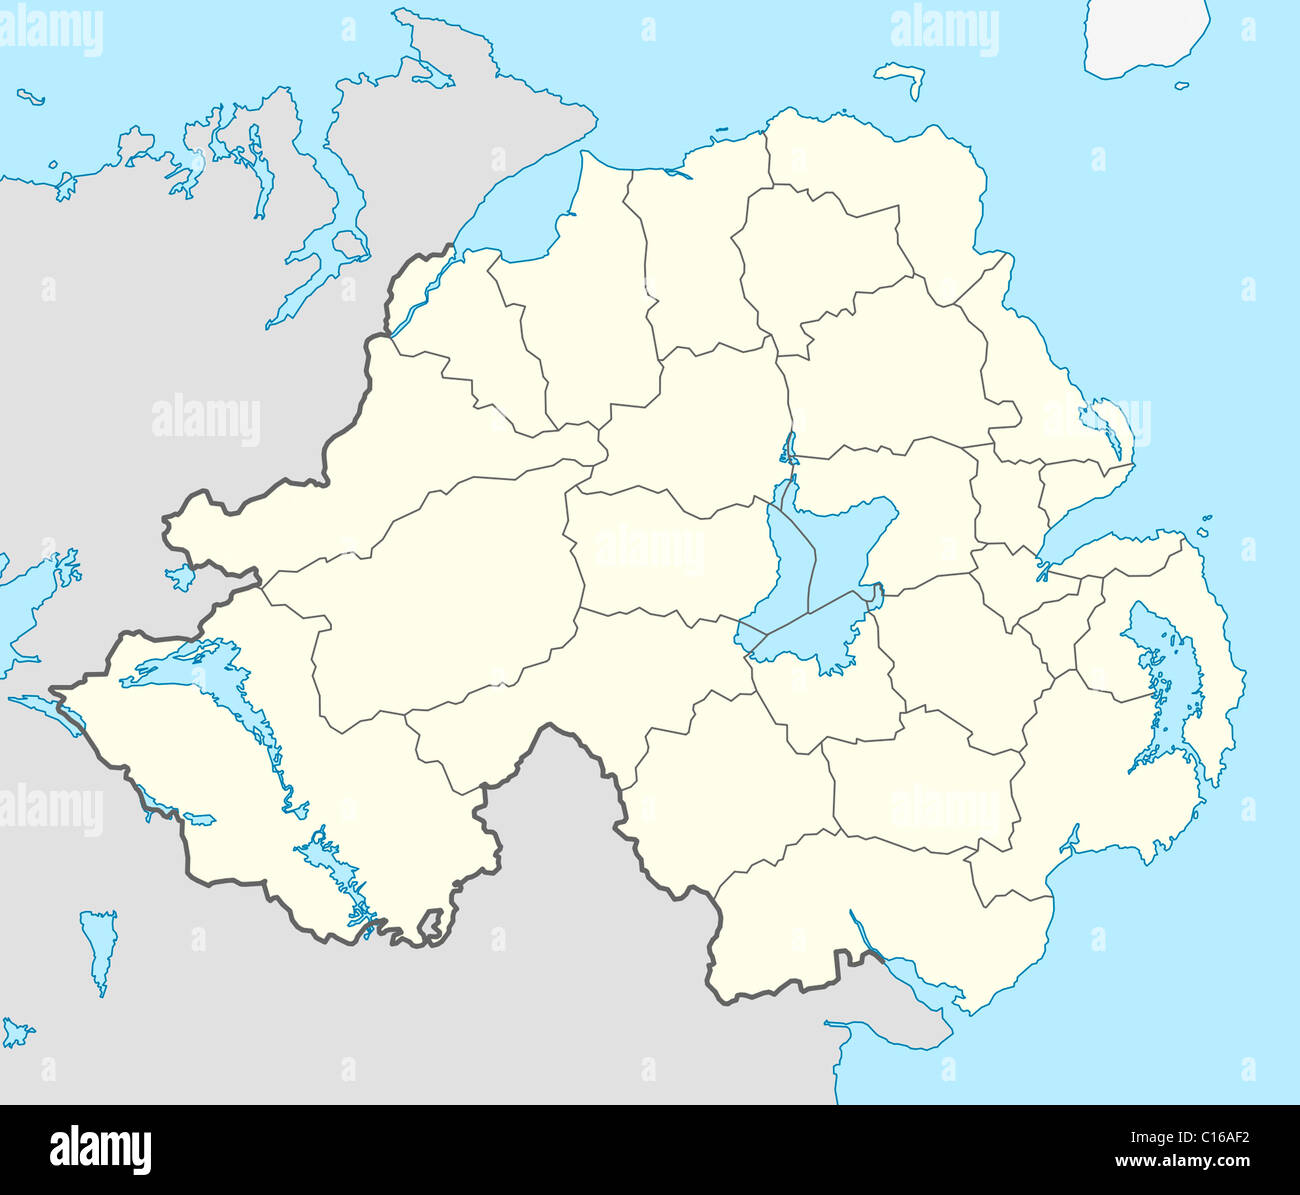 Map Of Northern Ireland And Ireland.Northern Ireland Map Stock Photos Northern Ireland Map Stock